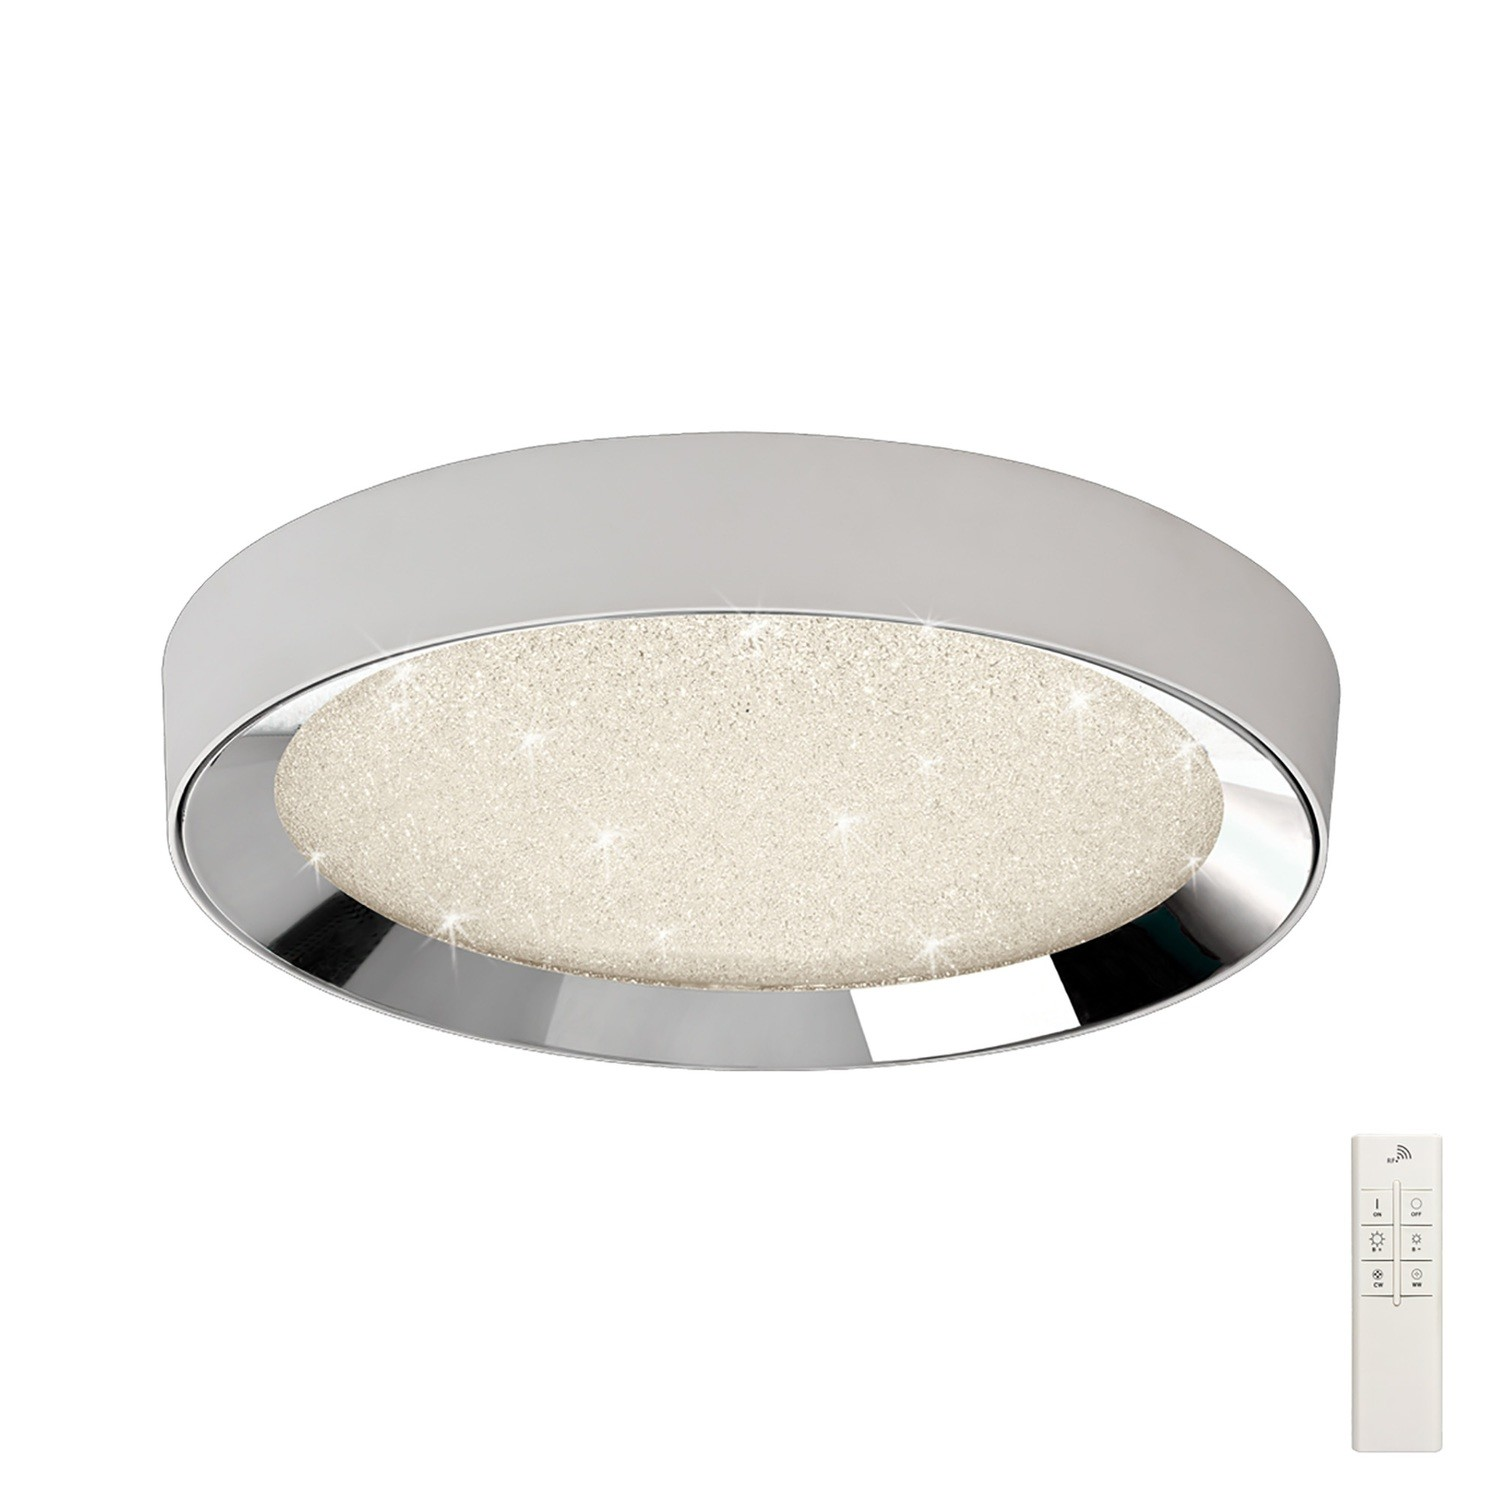 Male Flush 65cm Round 40W LED 3000-6500K Tuneable, 3200lm, Remote Control Chrome/ Acrylic